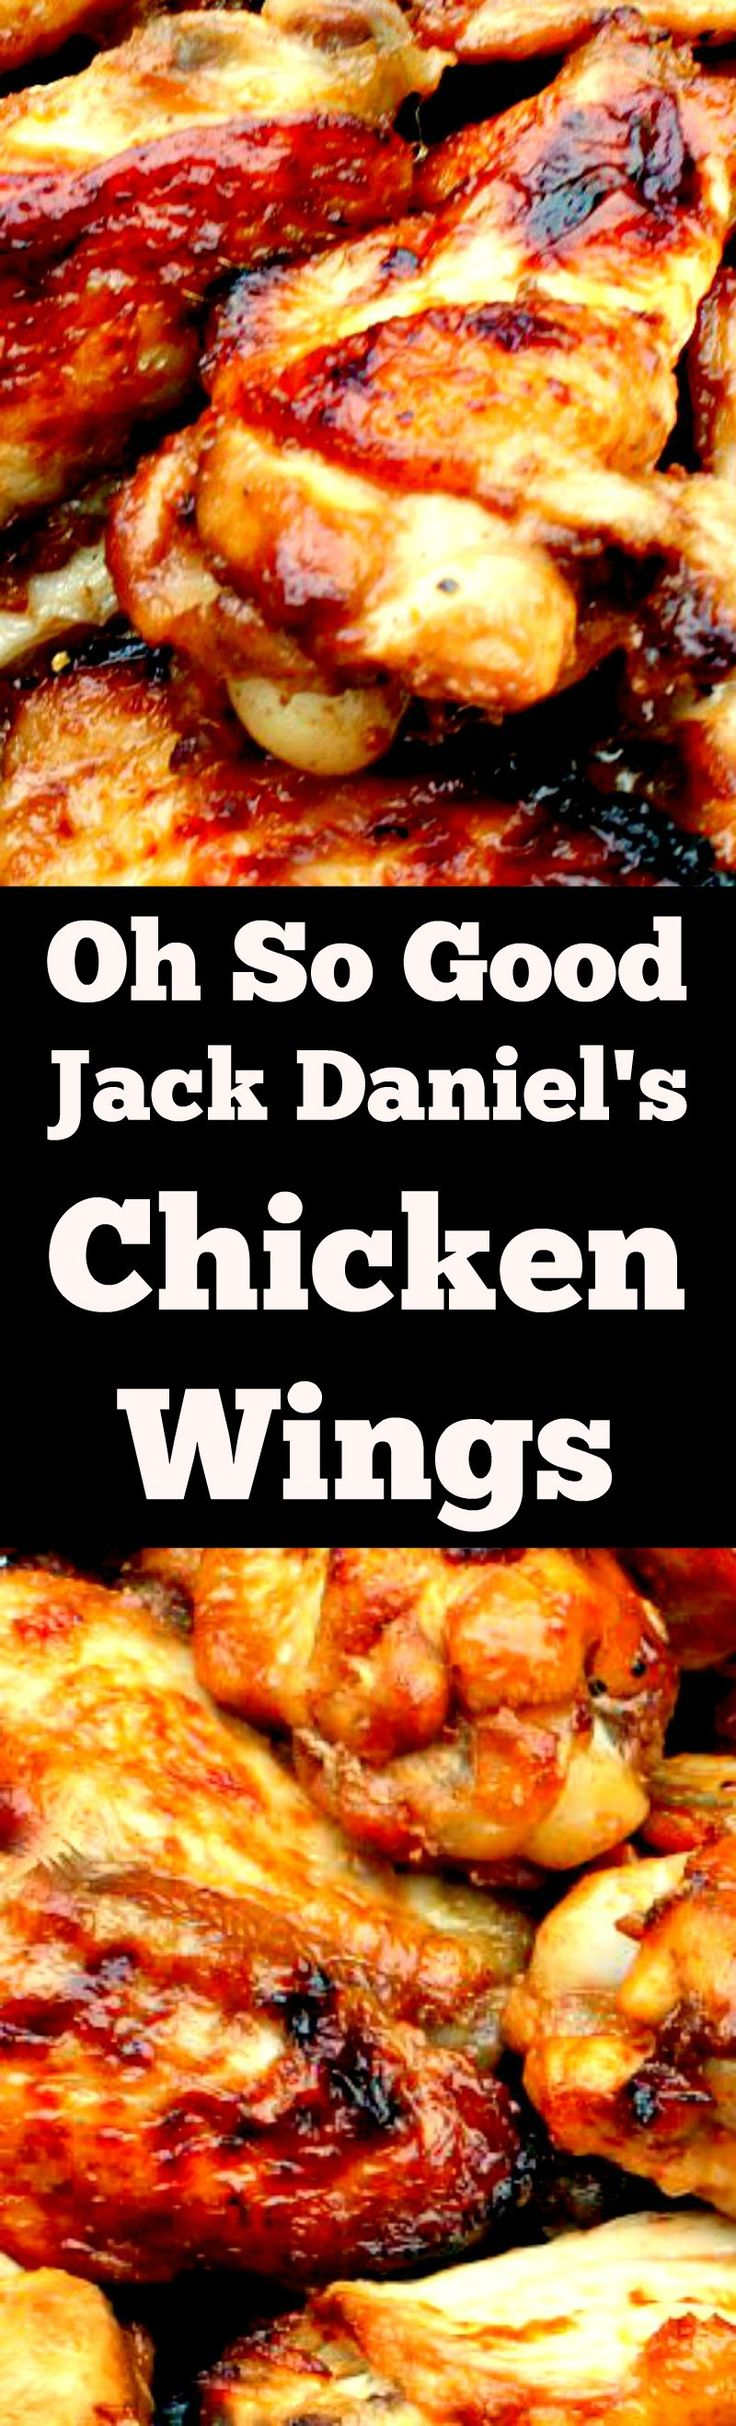 Oh So Good Jack Daniel's Chicken Wings are fabulous! They're easy to prepare, suitable for grilling or oven and taste out of this world with a great marinade. Always a hit at parties!   Lovefoodies.com